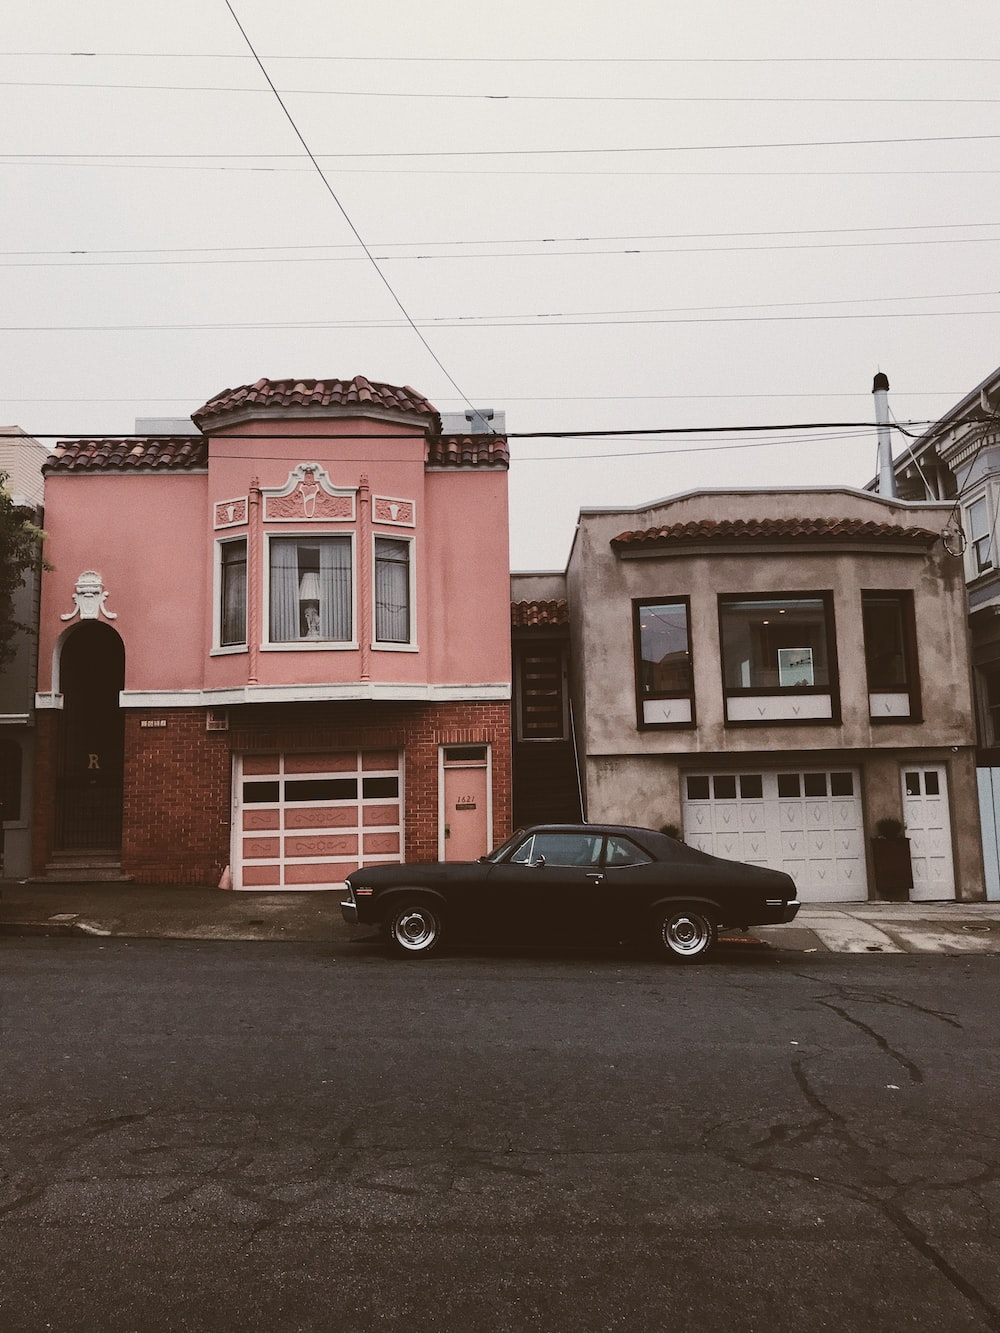 black coupe parked beside red concrete building during daytime